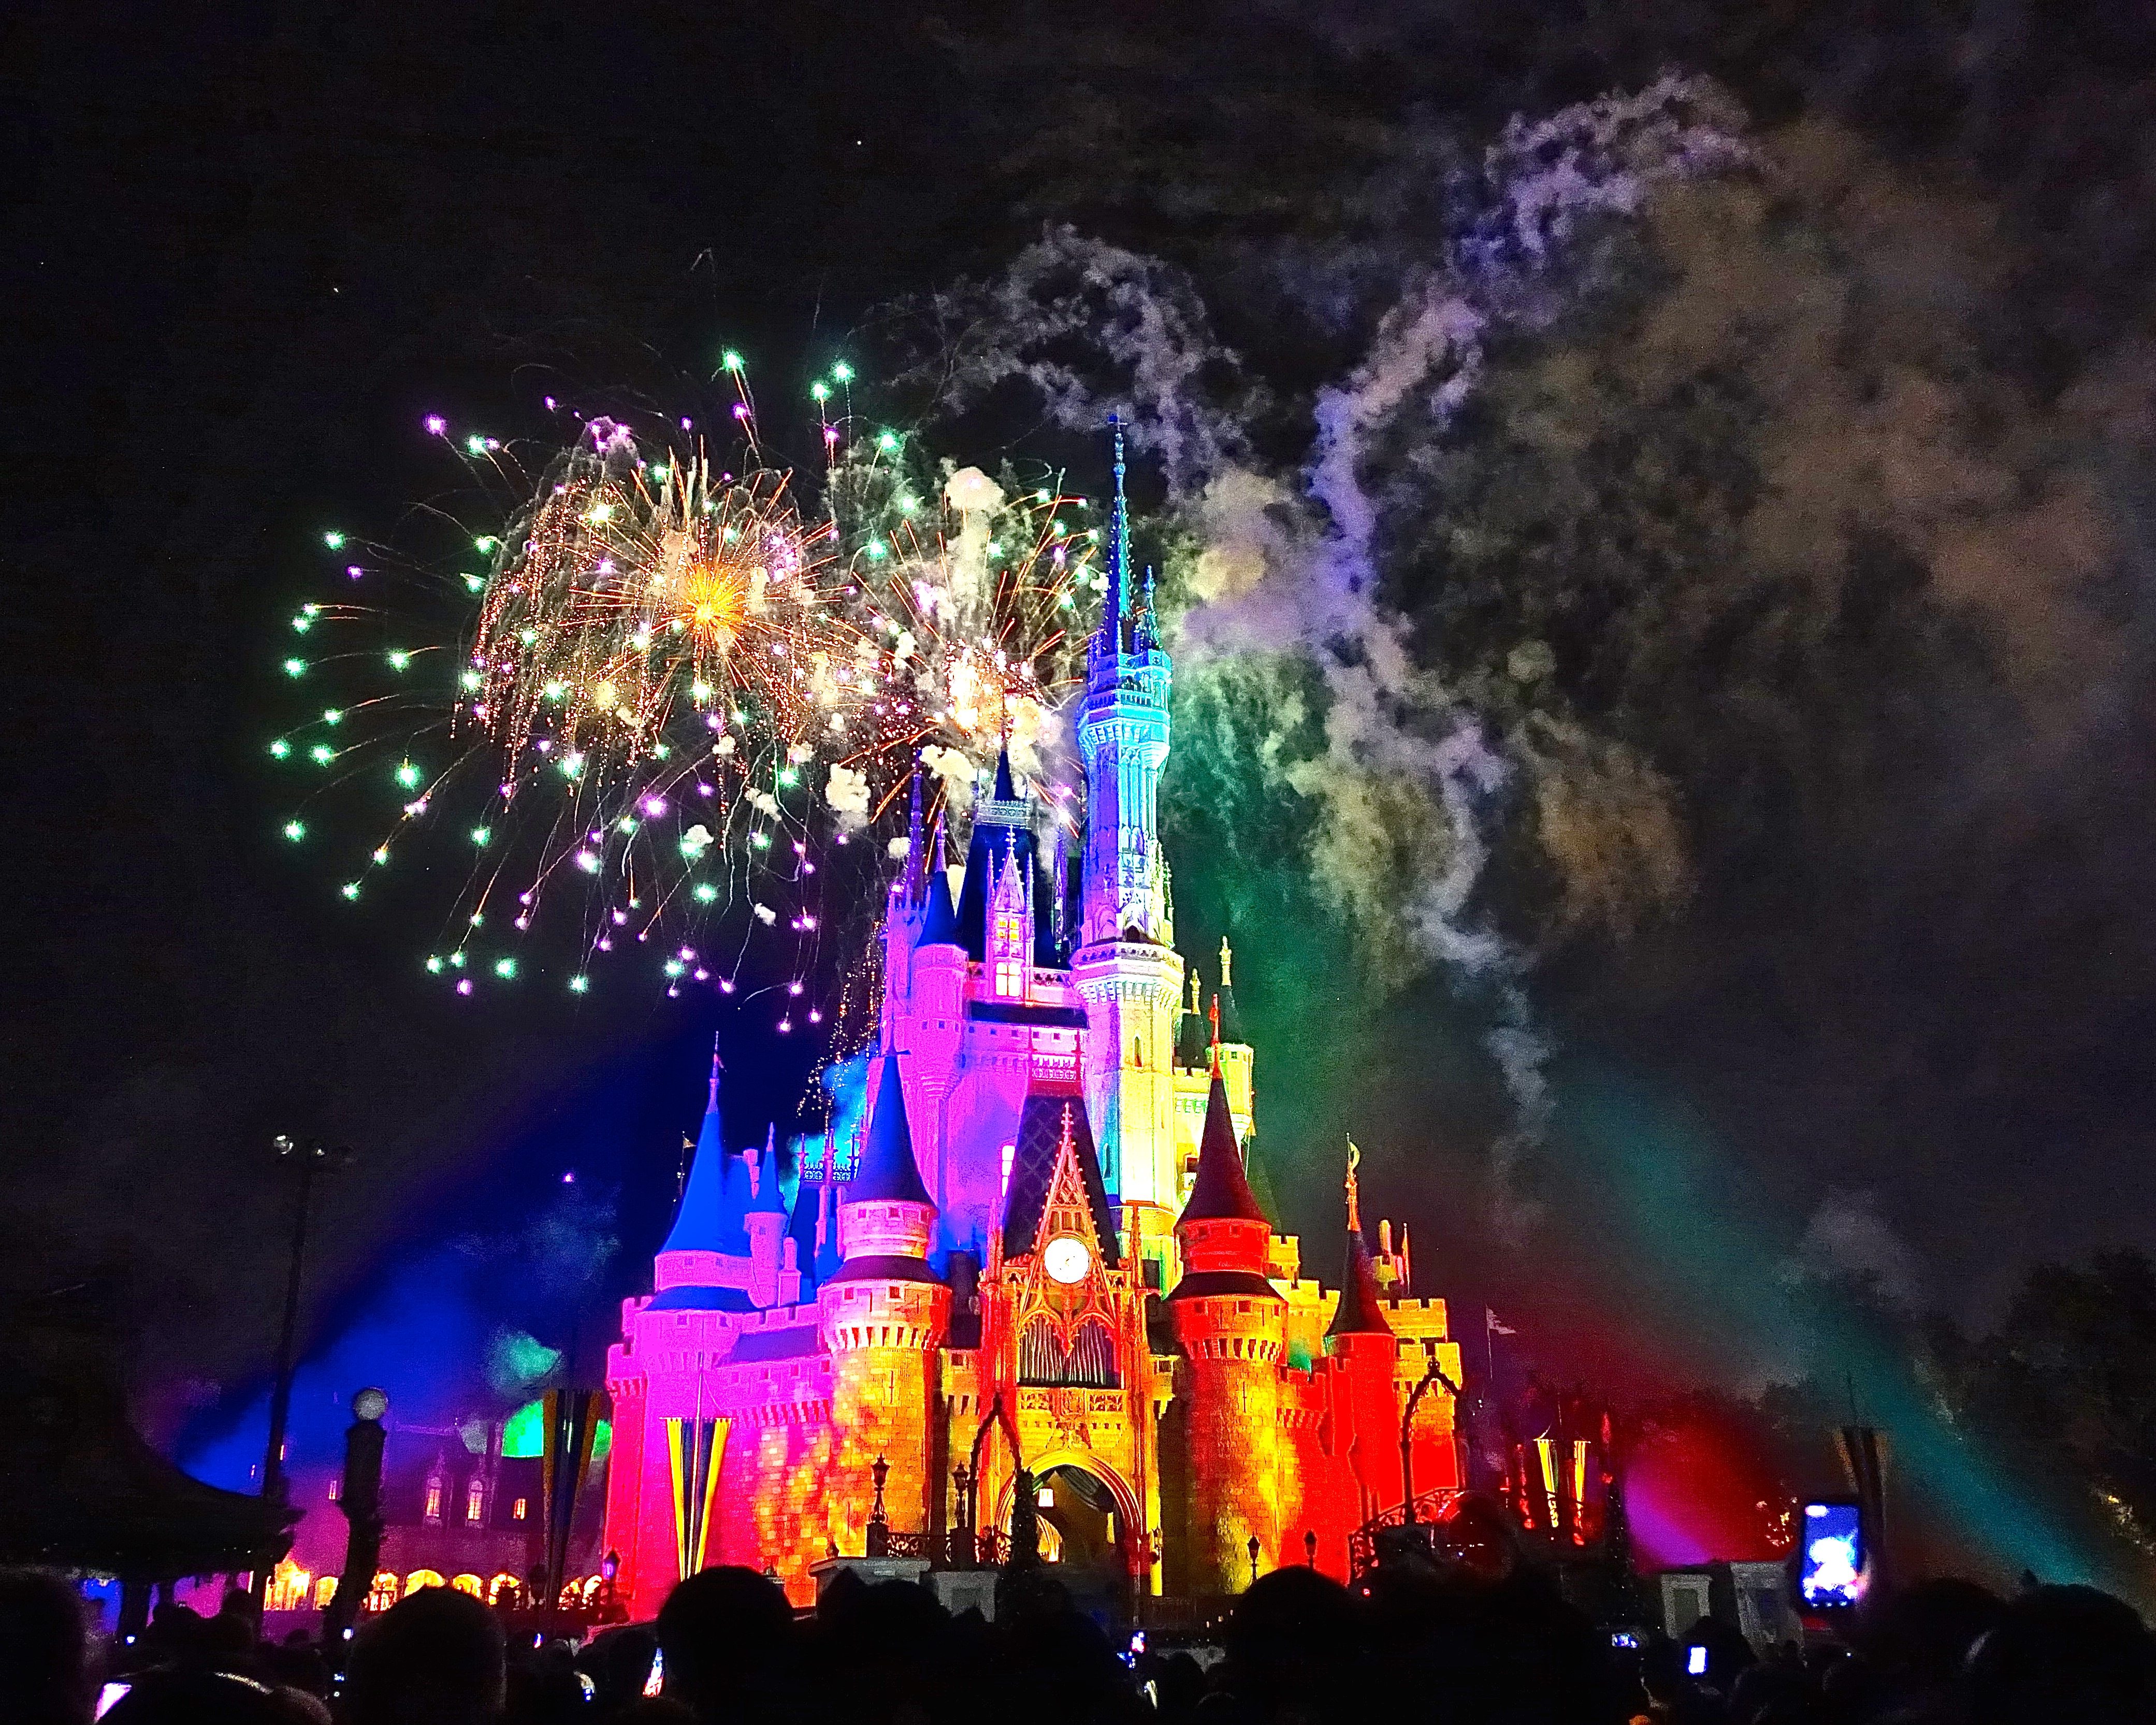 Potpourri of lights at Disney's Wishes Fireworks